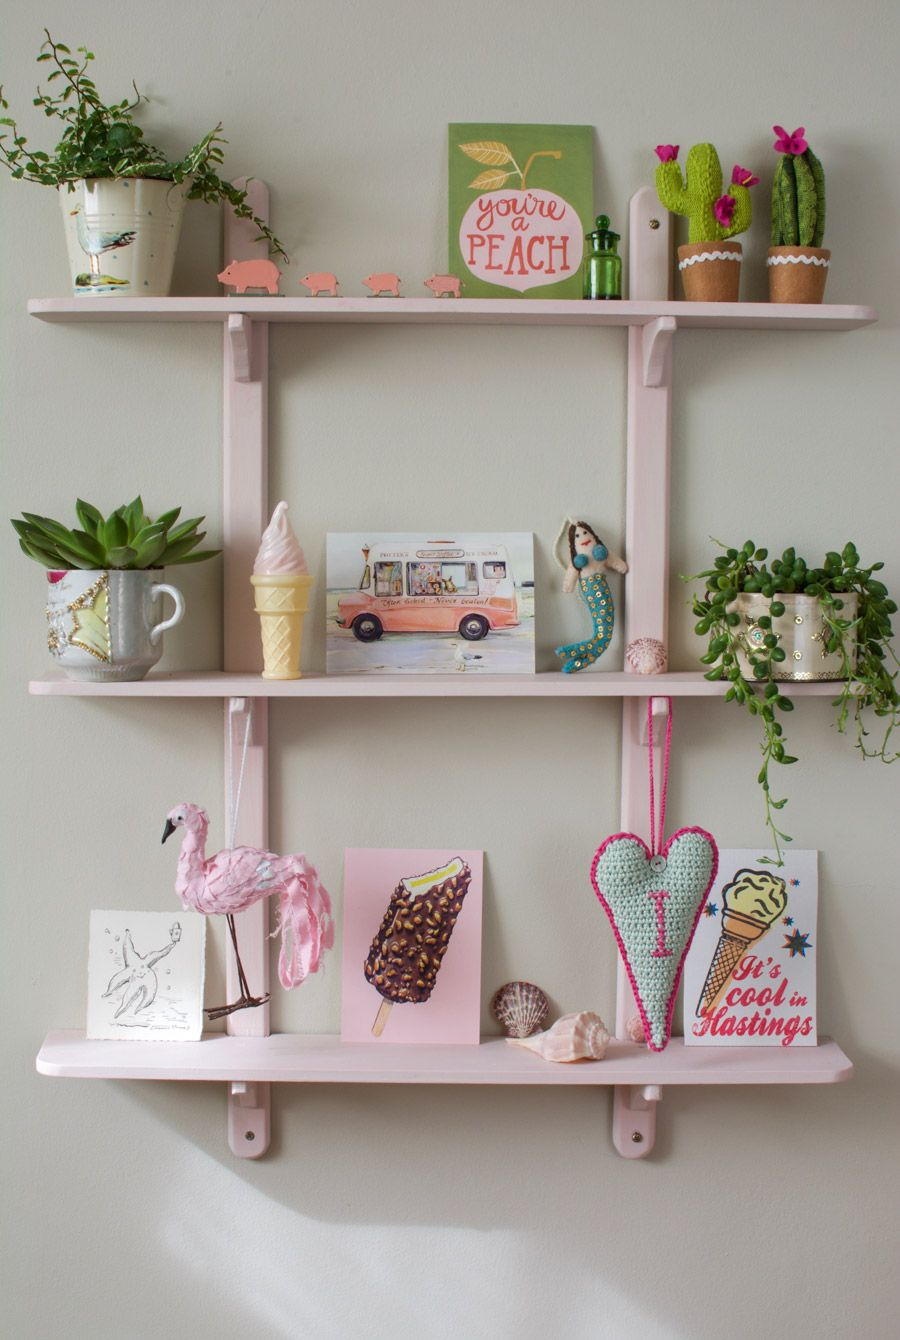 Little Girl S Bedroom Shelf Given A Tickle Of Pink Home Fantasy Shelves In Bedroom Girls Bedroom Pink Shelves